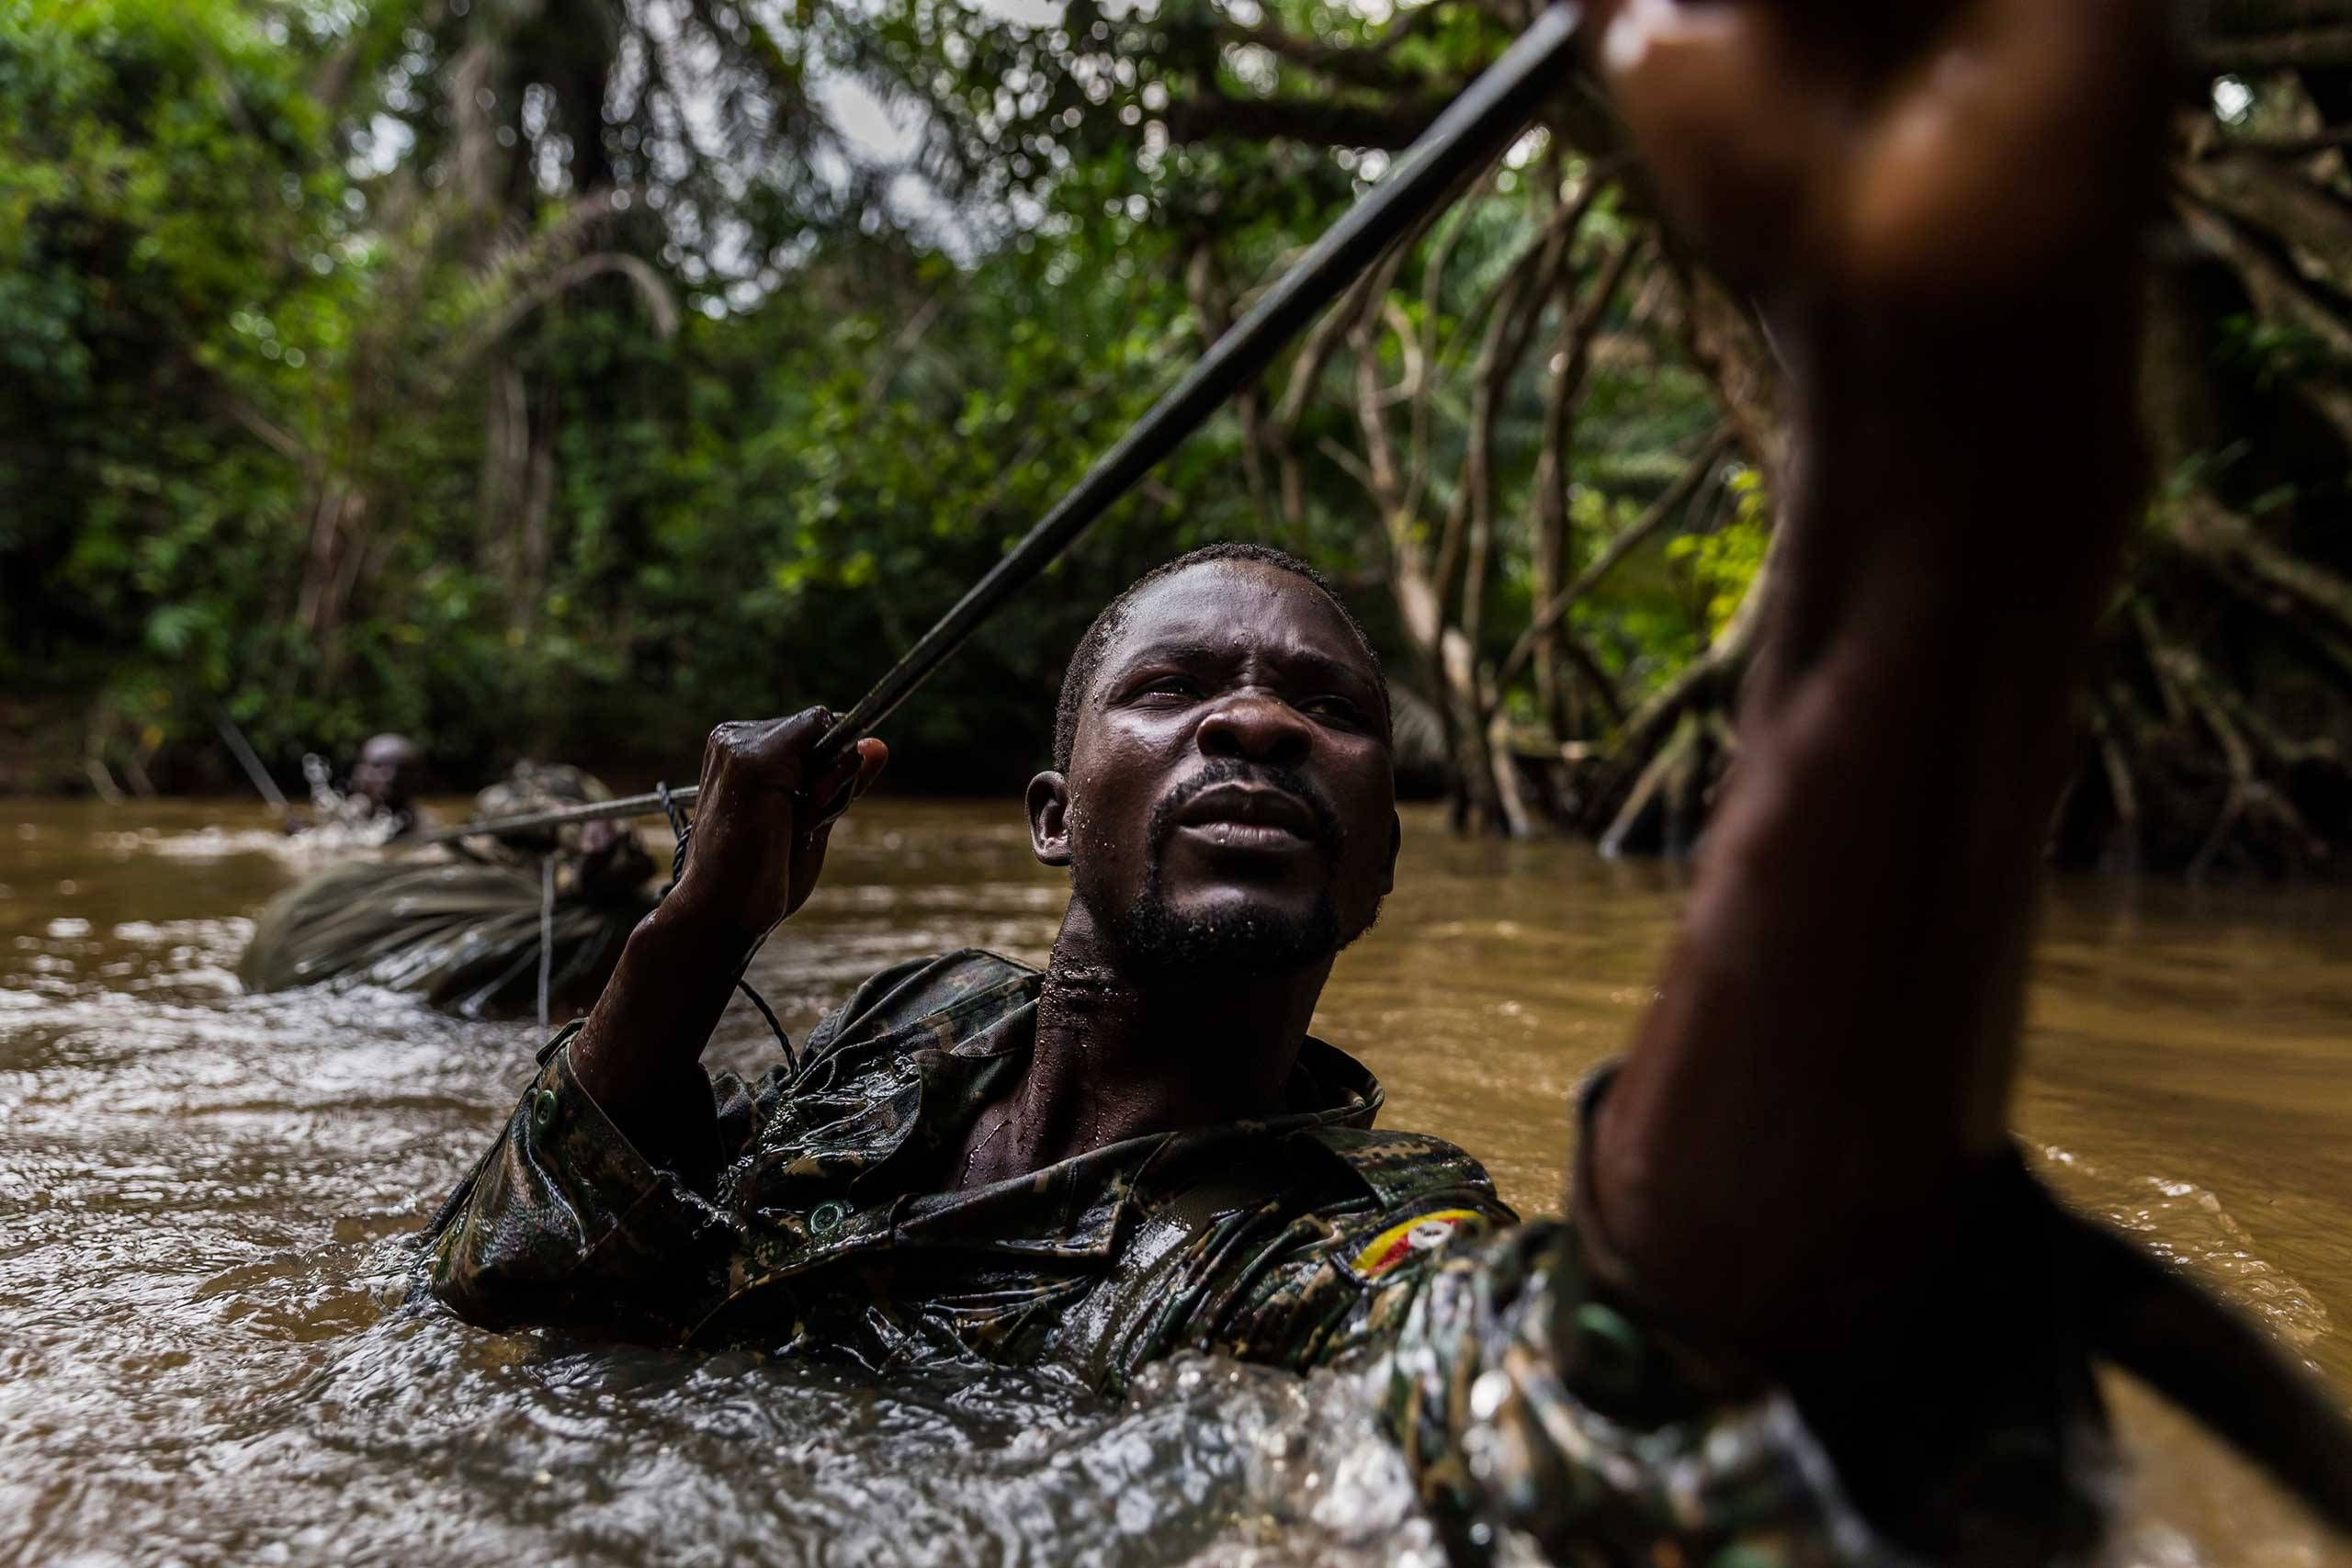 Ugandan soldiers cross a river while on patrol against the Lord's Resistance Army close to the border of the DRC. Mbeki, Central African Republic. Brent Stirton